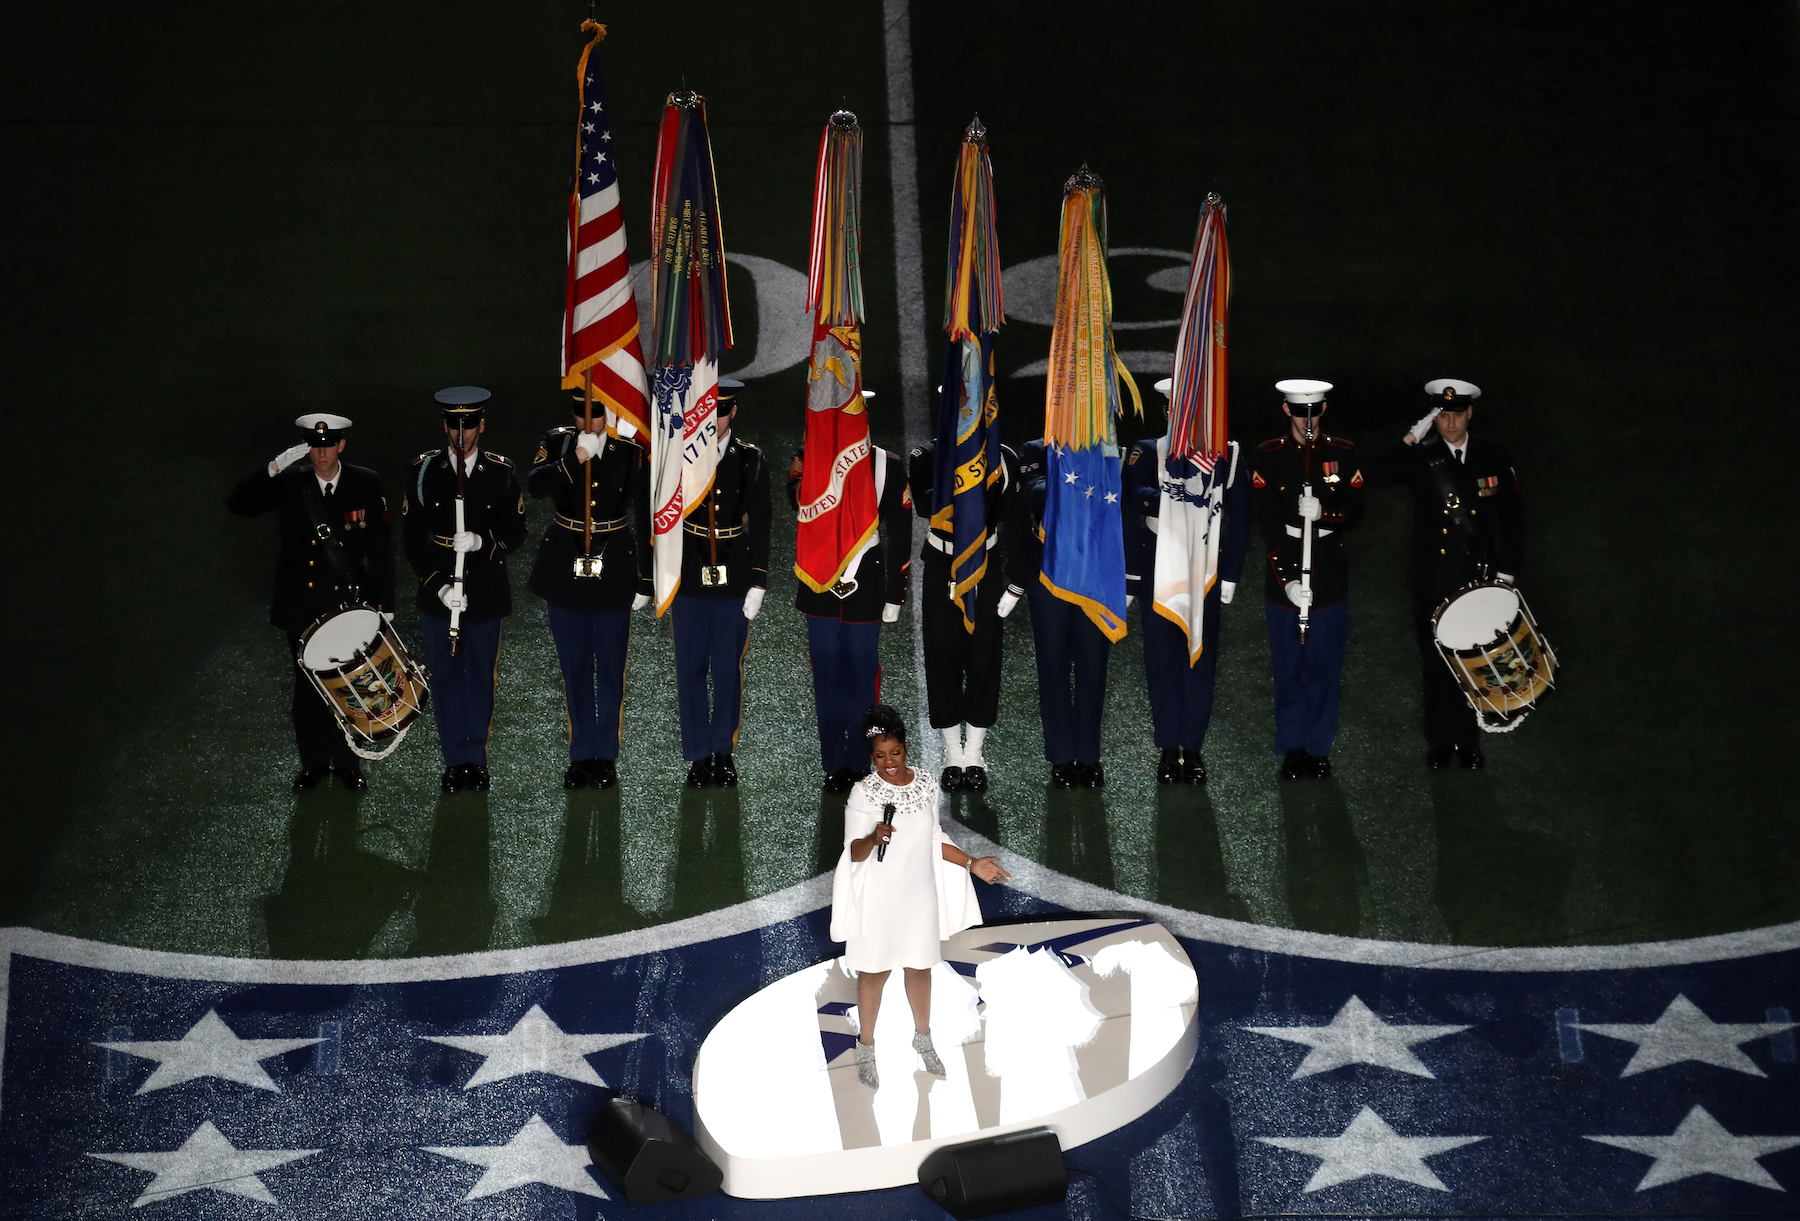 """<div class=""""meta image-caption""""><div class=""""origin-logo origin-image wpvi""""><span>wpvi</span></div><span class=""""caption-text"""">Gladys Knight performs the National Anthem prior to Super Bowl LIII between the New England Patriots and the Los Angeles Rams at Mercedes-Benz Stadium on February 03, 2019. (Rob Carr/Getty Images)</span></div>"""